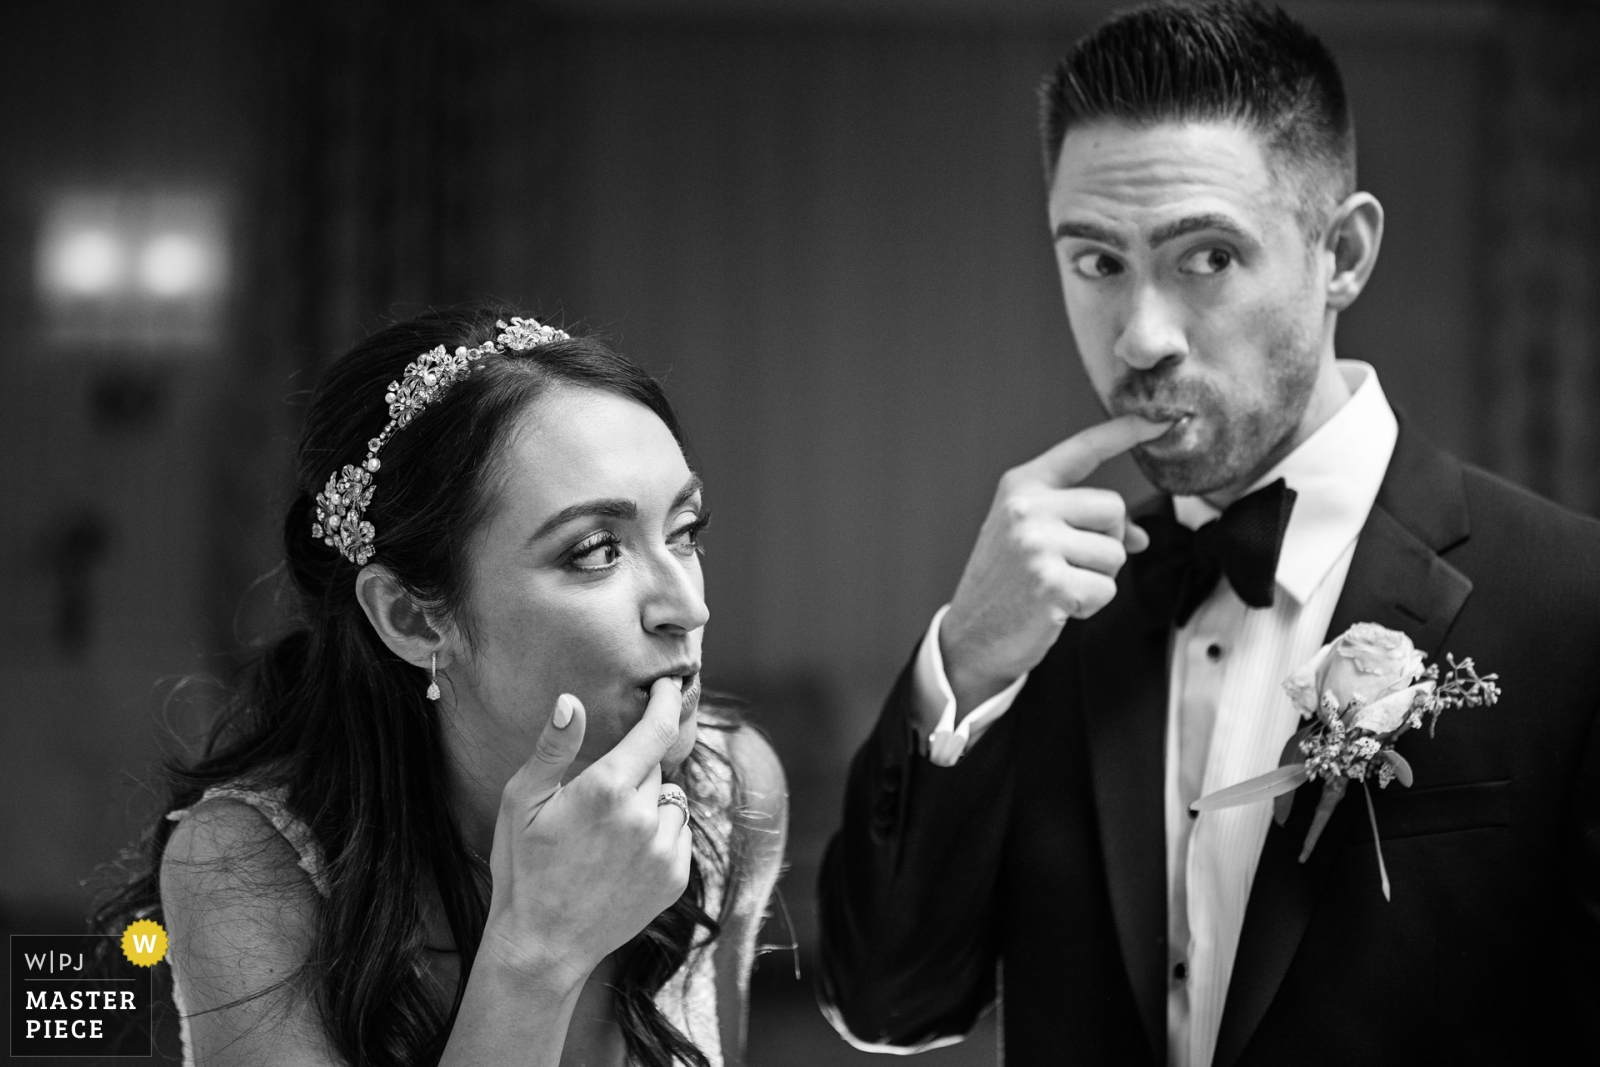 Bride and groom simultaneously lick cake off their fingers while making surprised reactions at Edgewood Country Club NJ wedding - New Jersey, United States Wedding Photography -  | Edgewood Country Club, New Jersey